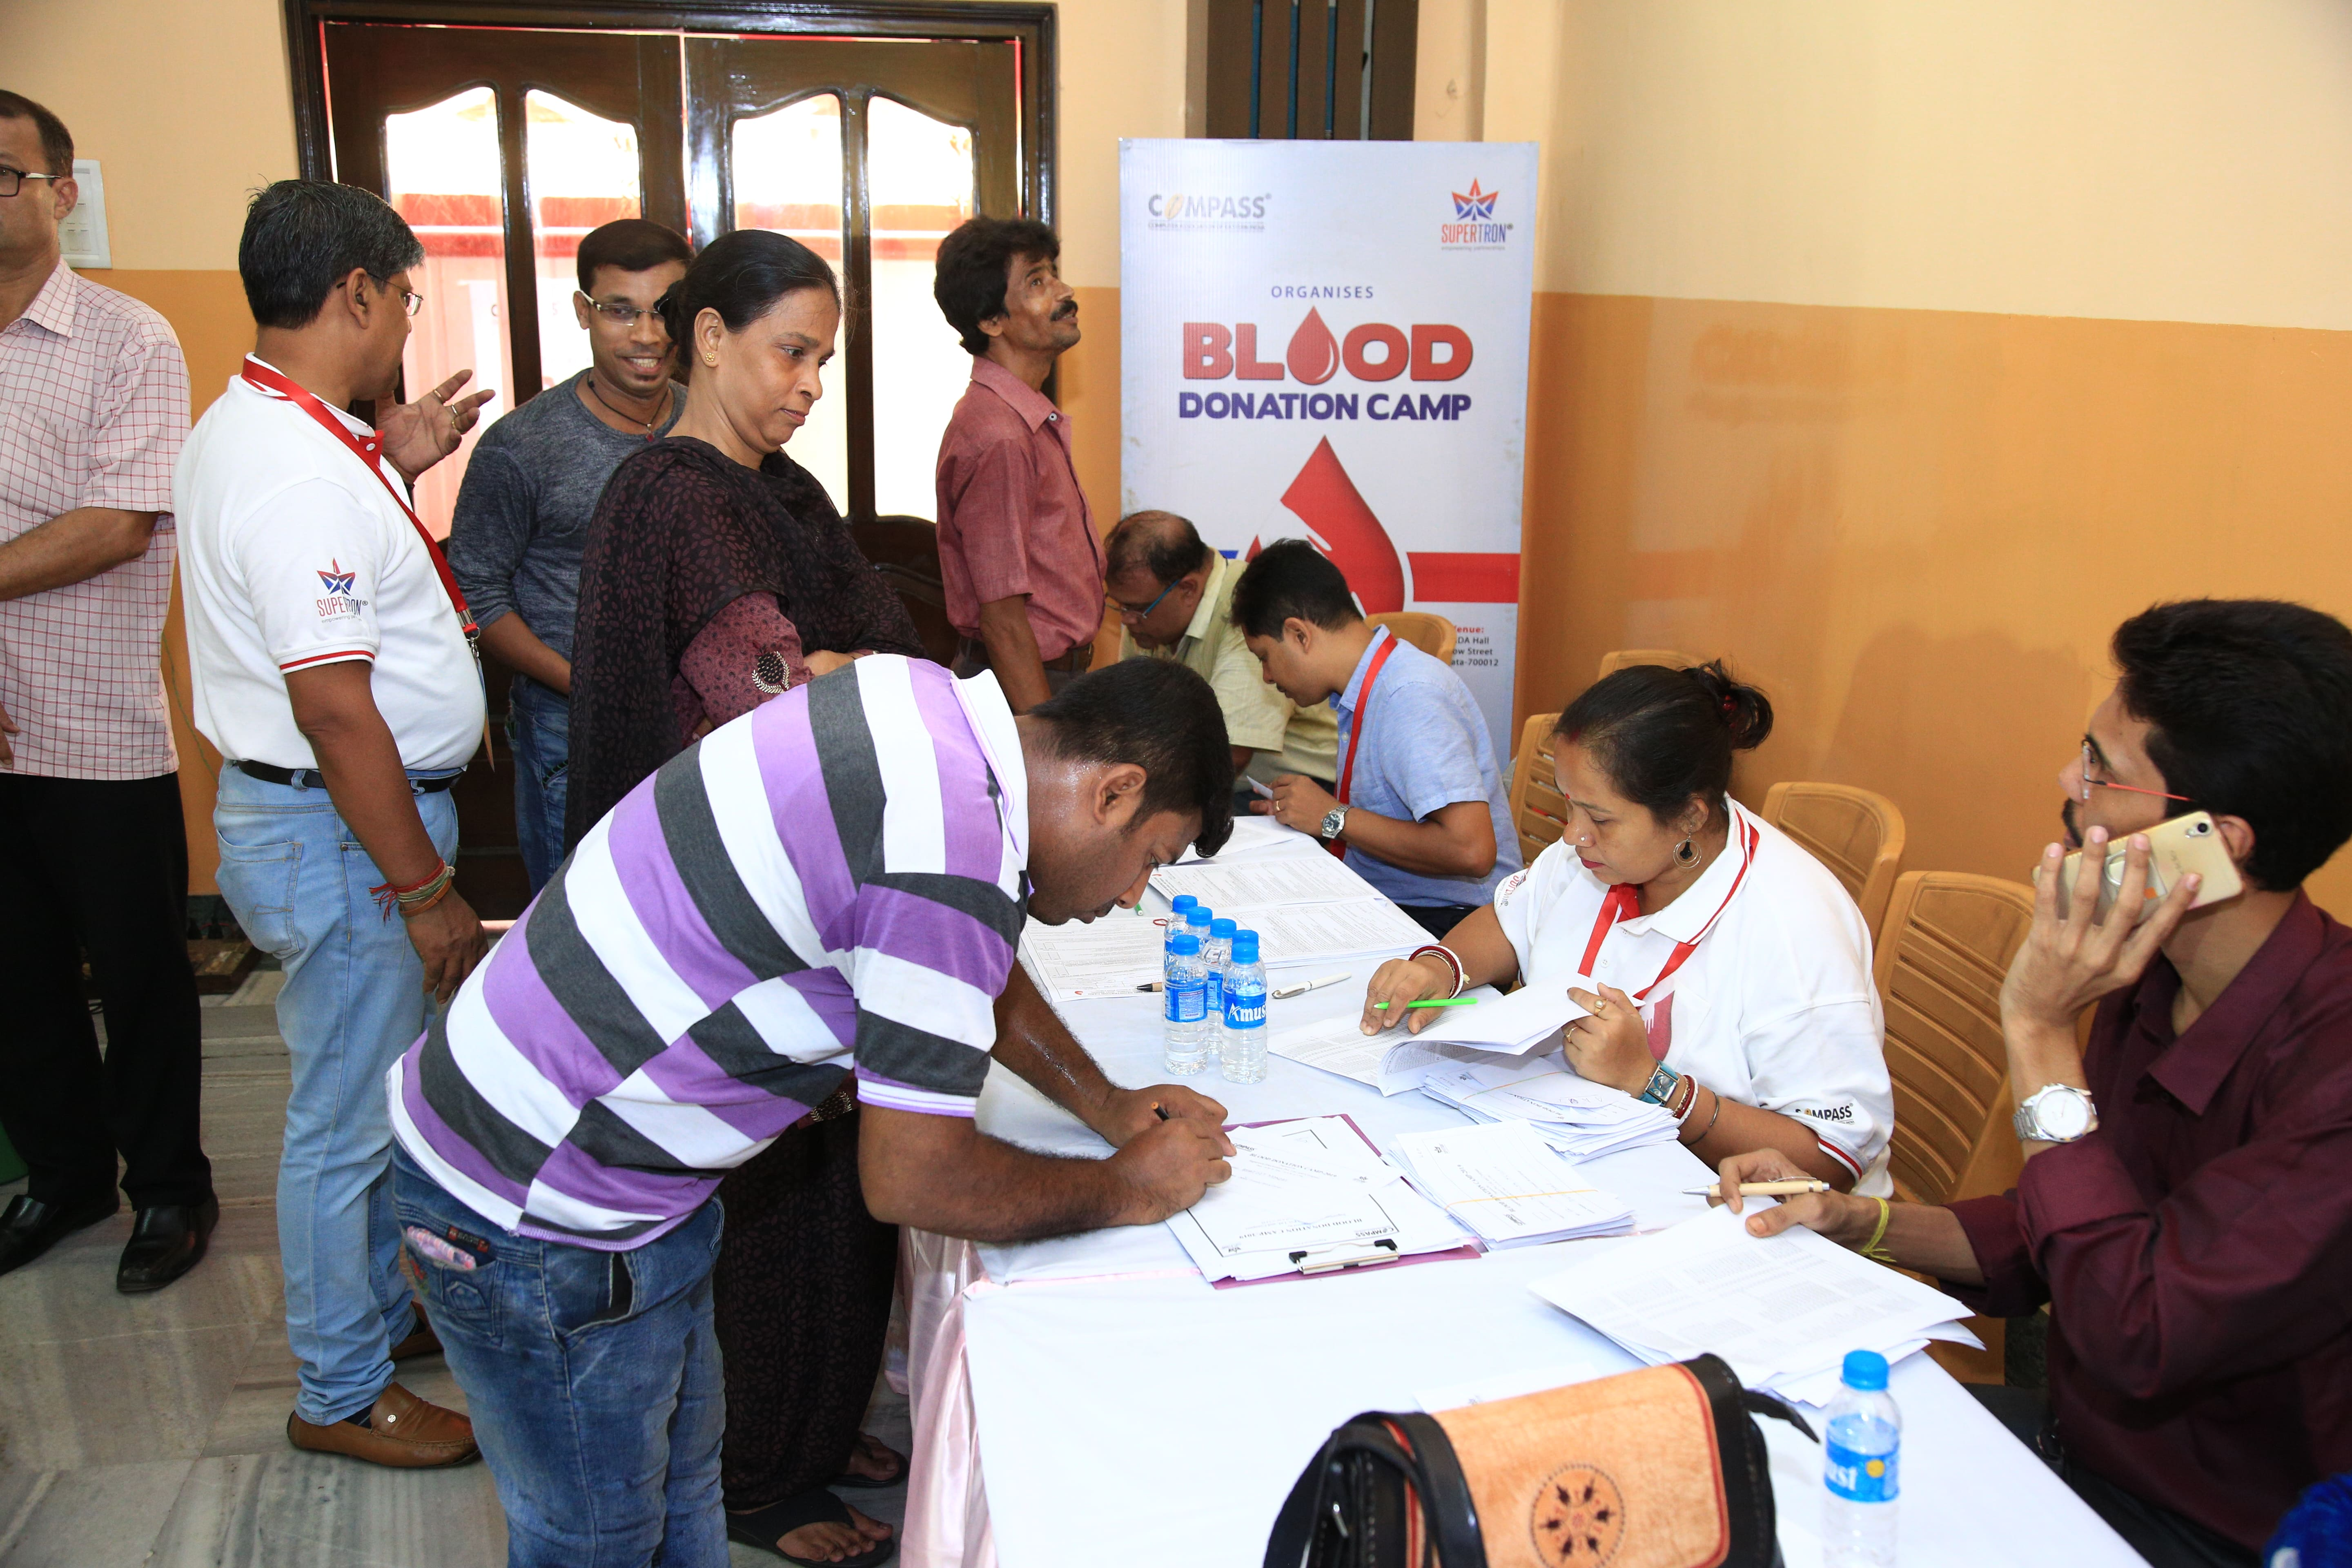 https://www.supertronindia.com/wp-content/uploads/2019/06/Blood-Donation-Camp-2-min.jpg